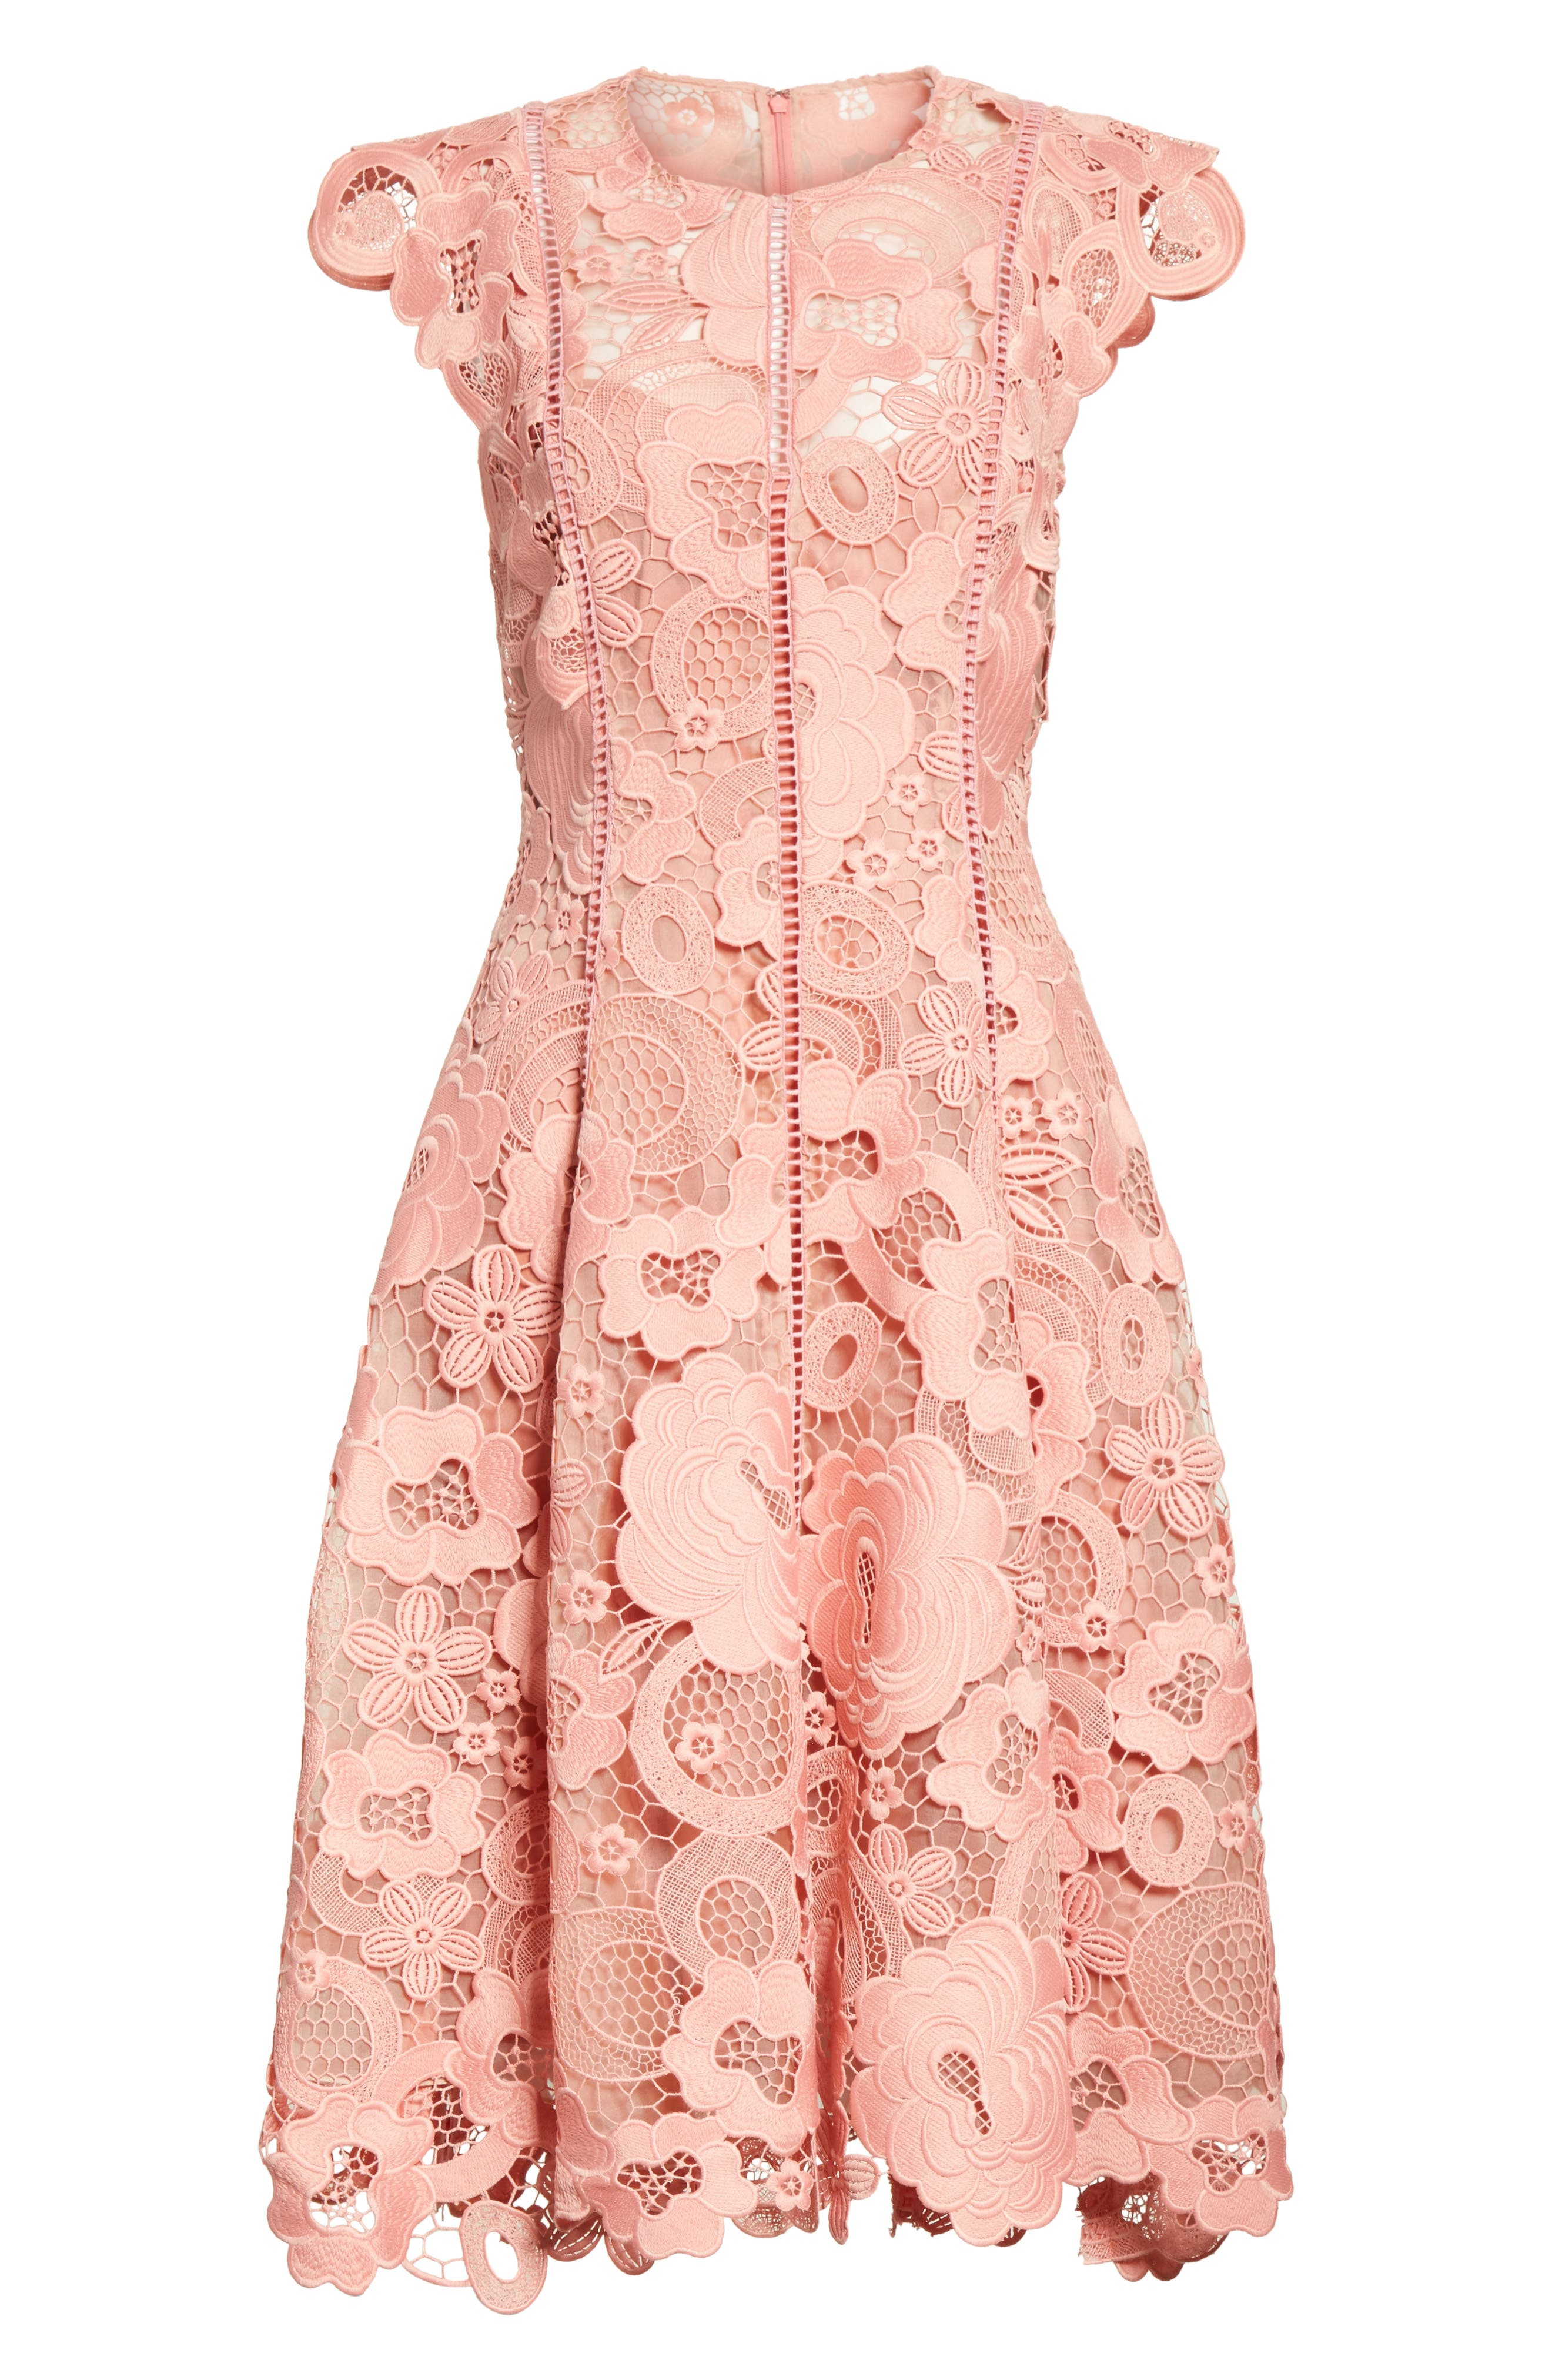 Seamed Lace Fit & Flare Dress,                             Alternate thumbnail 6, color,                             620